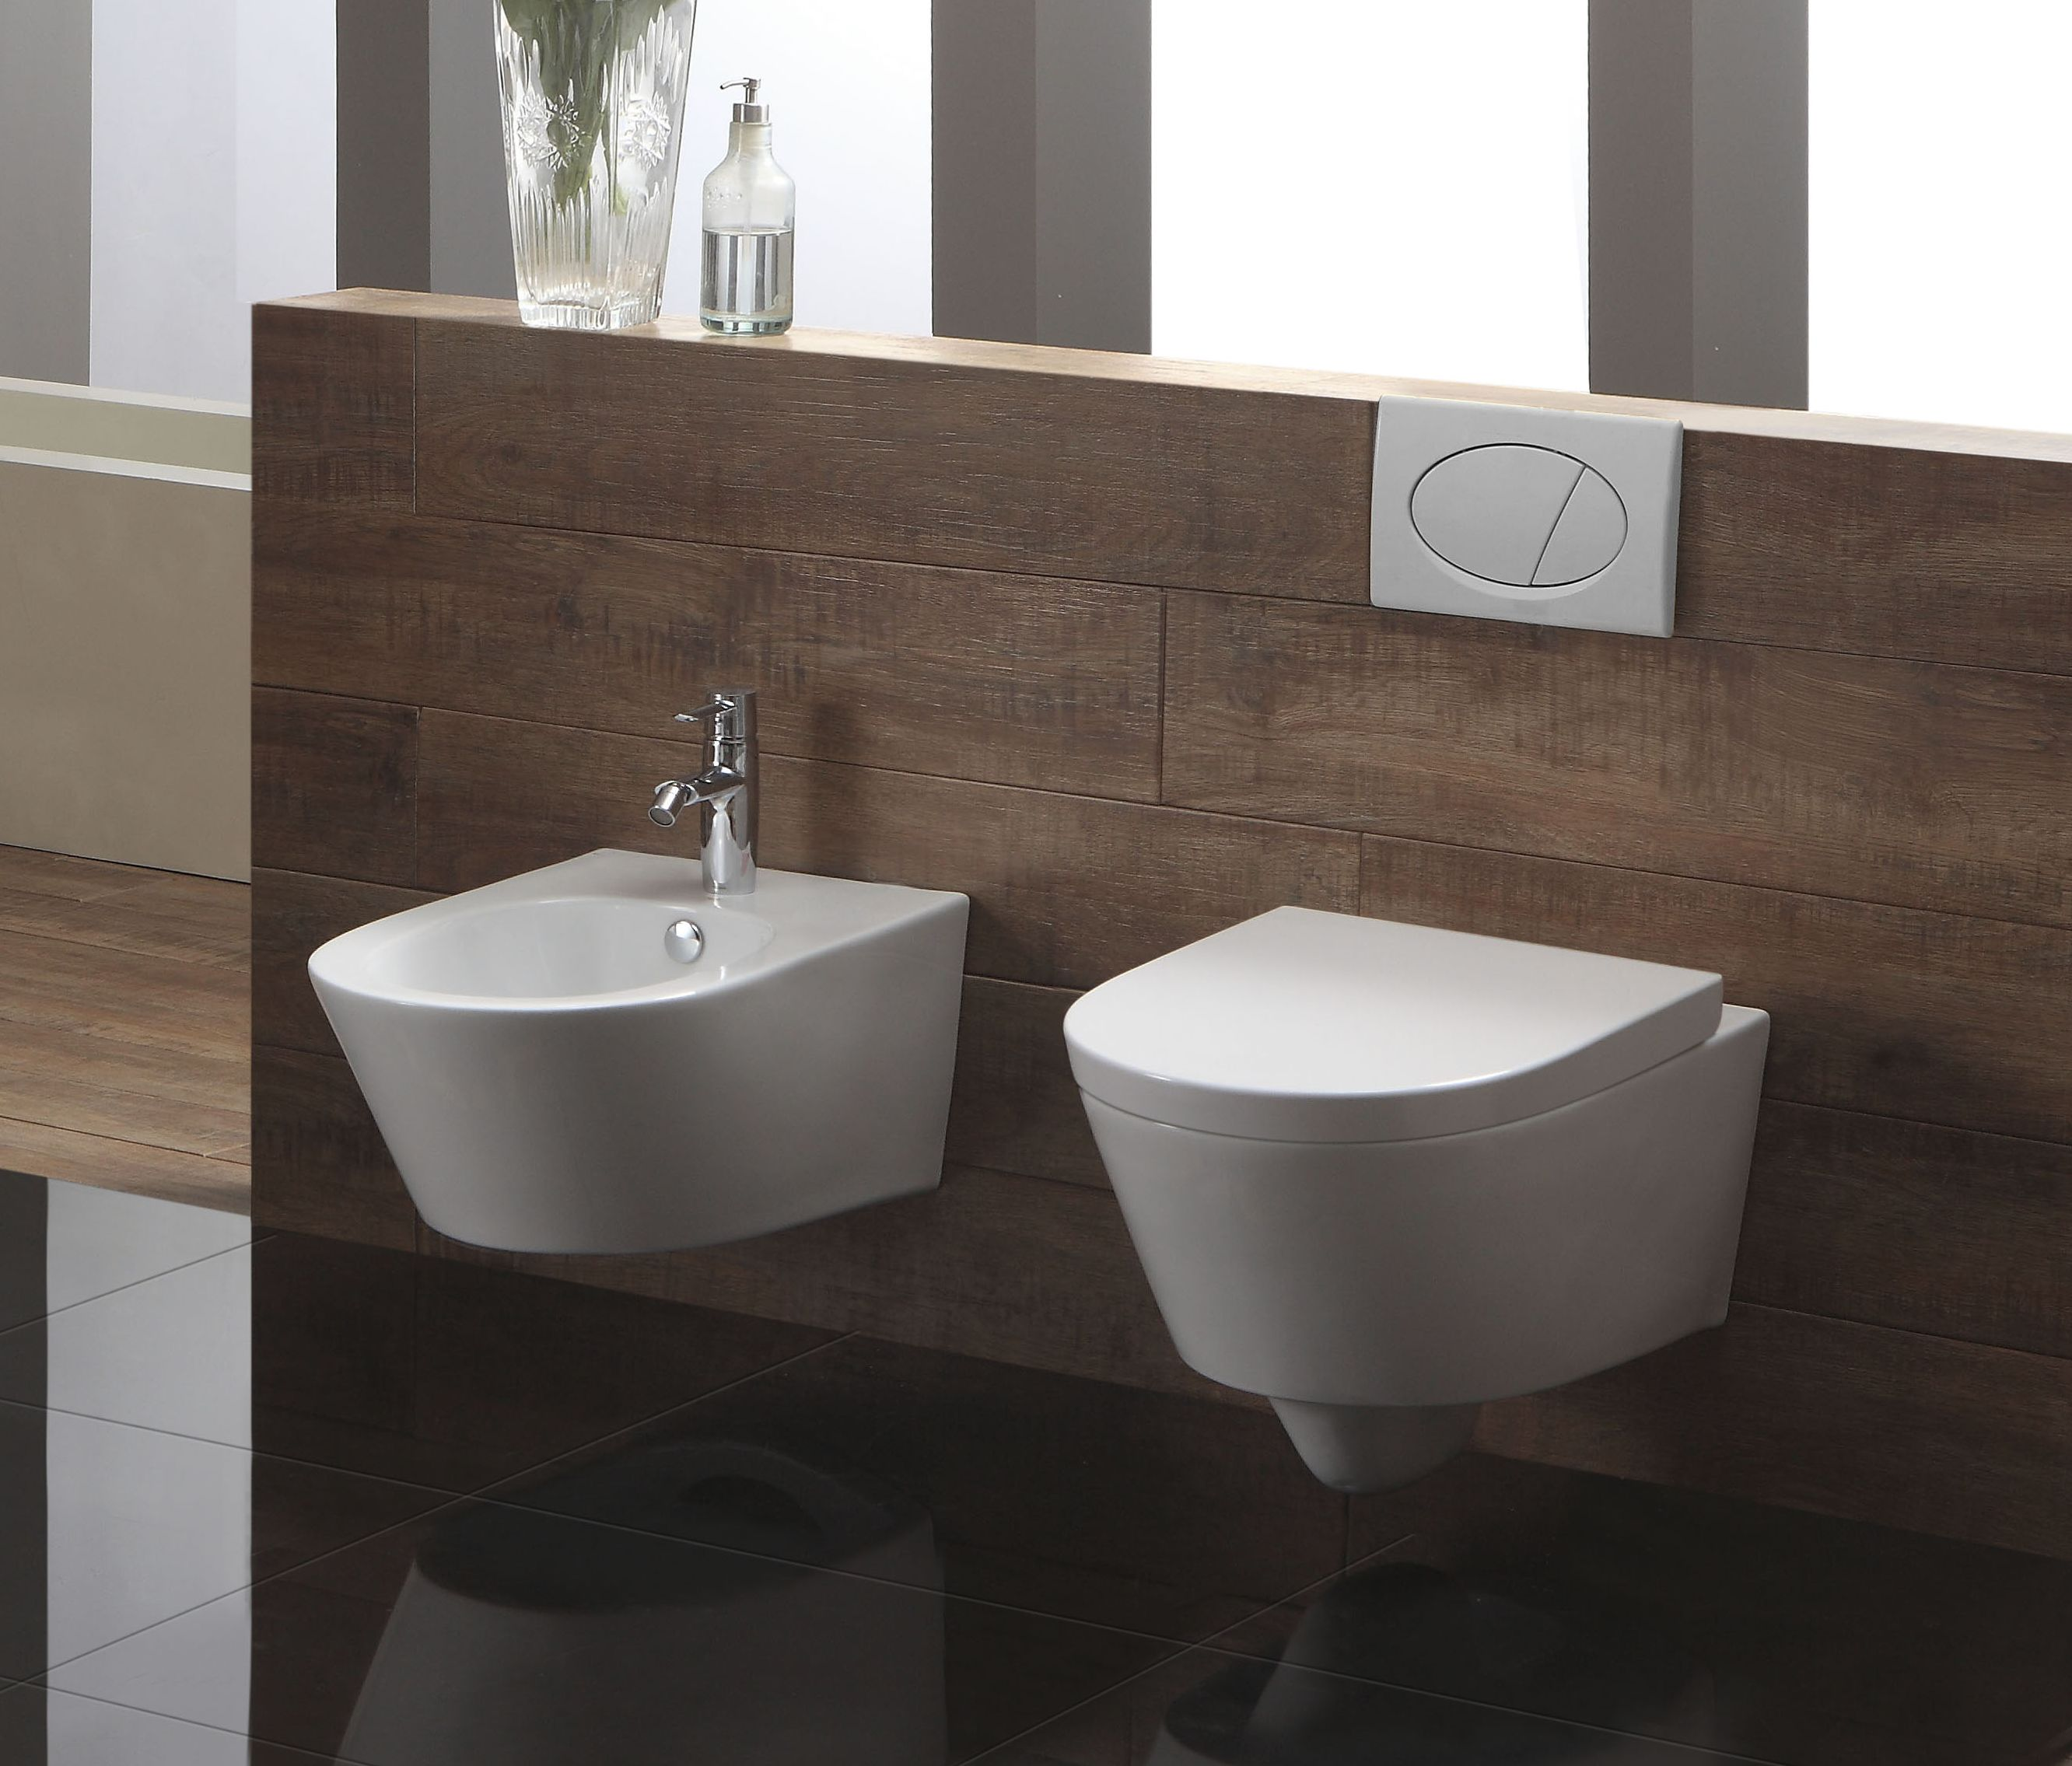 Wand-WC inkl. Soft-Close Sitz WH-586151